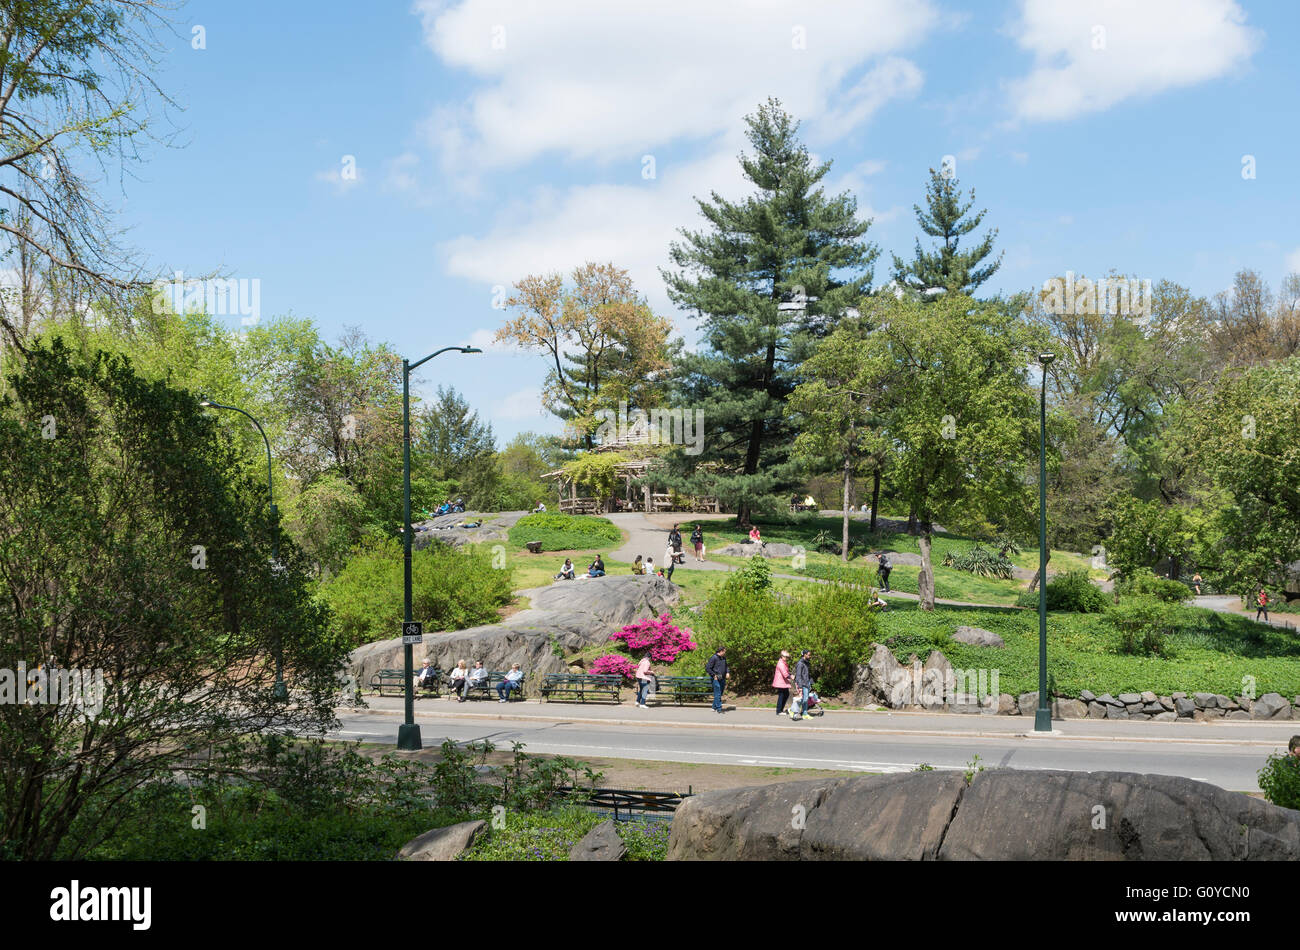 View of Central Park South, New York, in Spring looking towards Cop Cot with paths, people, rocks and trees on a - Stock Image